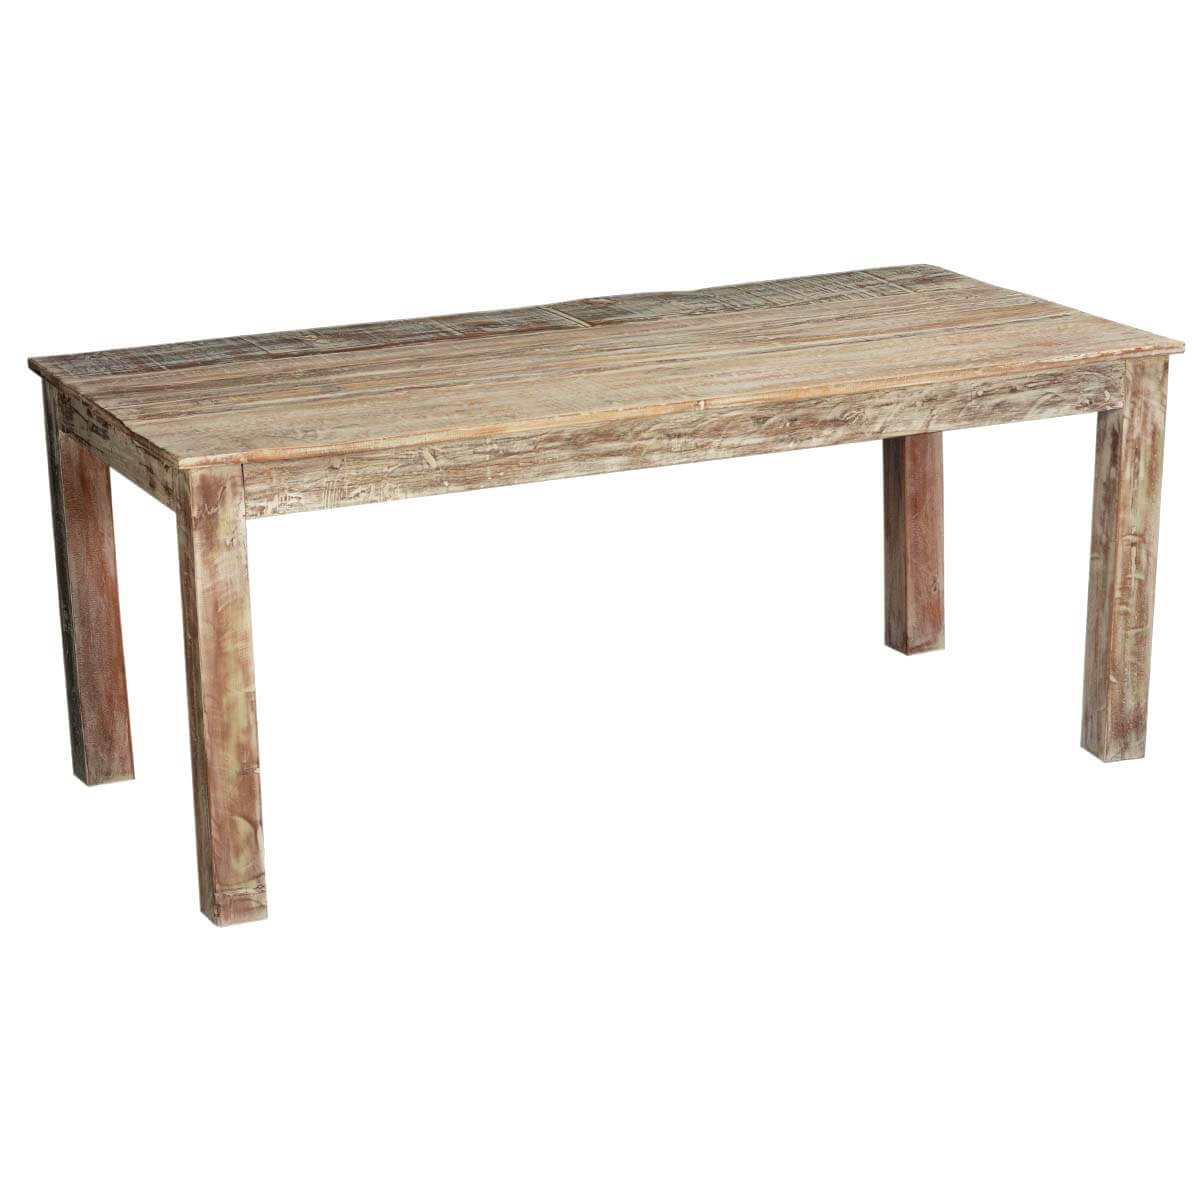 Rustic reclaimed wood texas distressed dining table